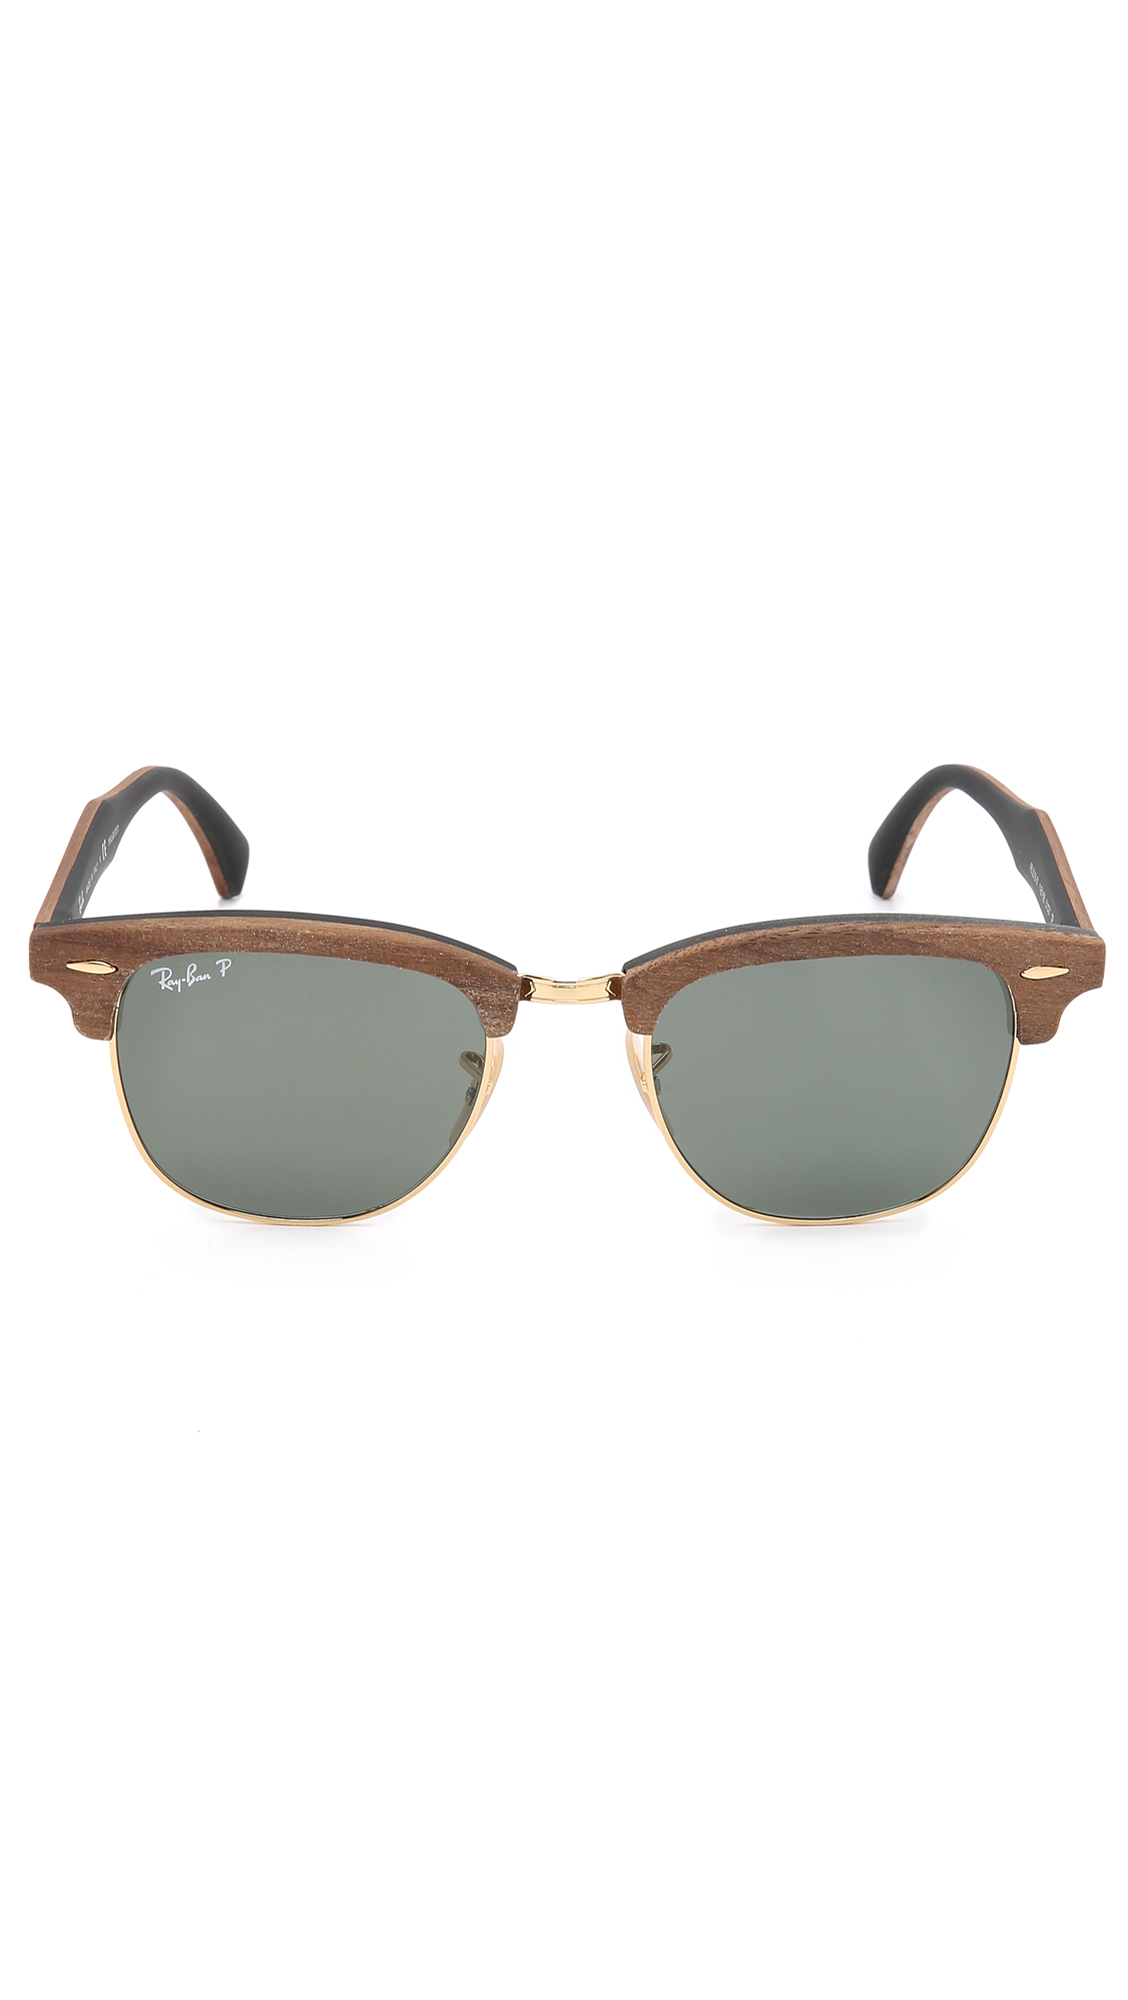 2019 cheap ray ban sunglasses new york discount